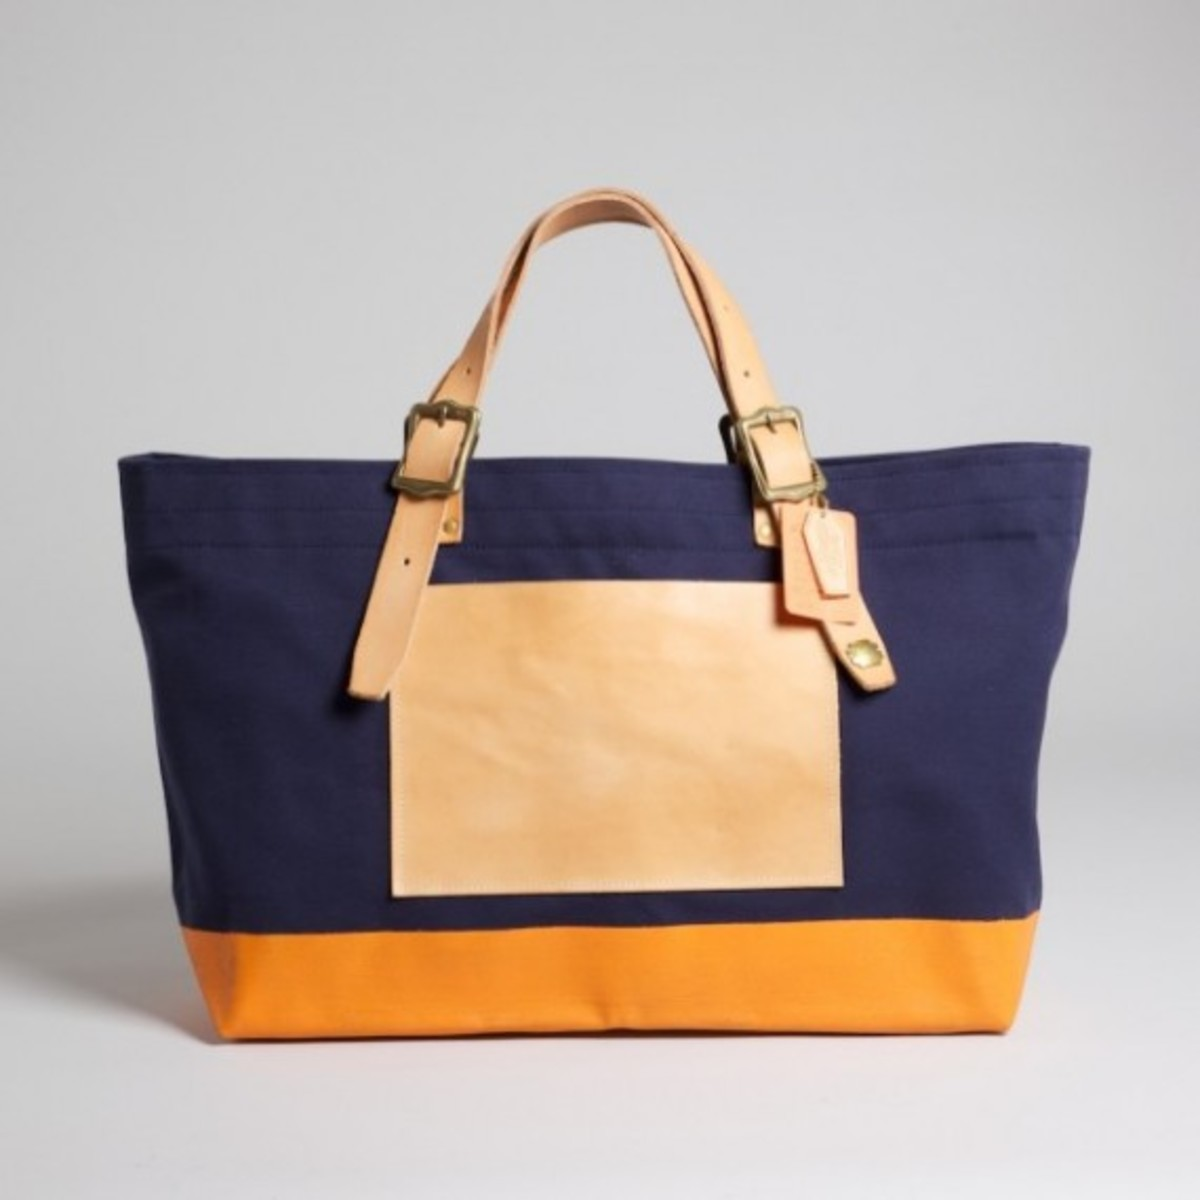 superior-labor-engineer-tote-bag-01